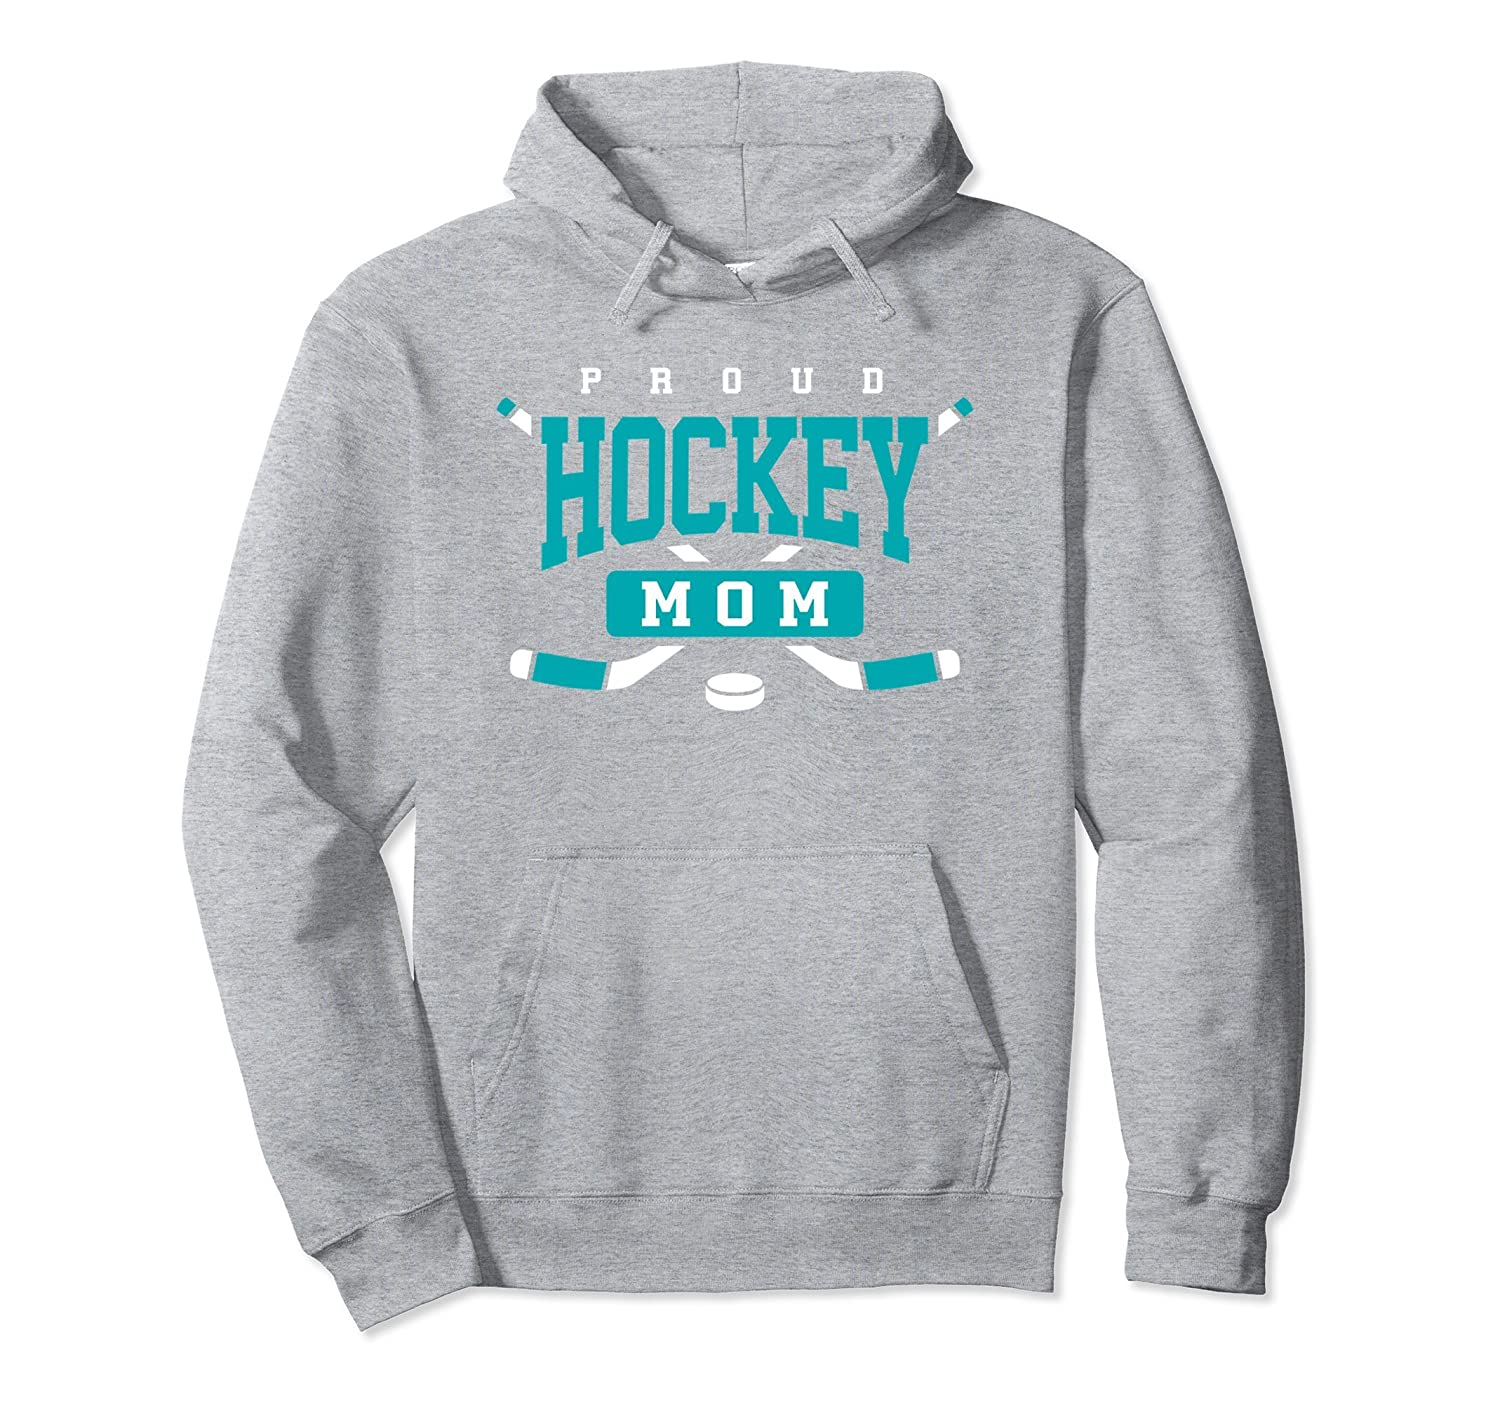 Proud Hockey Mom Hoodie Sweatshirt Teal Aqua Hockey Mom Gift-ah my shirt one gift